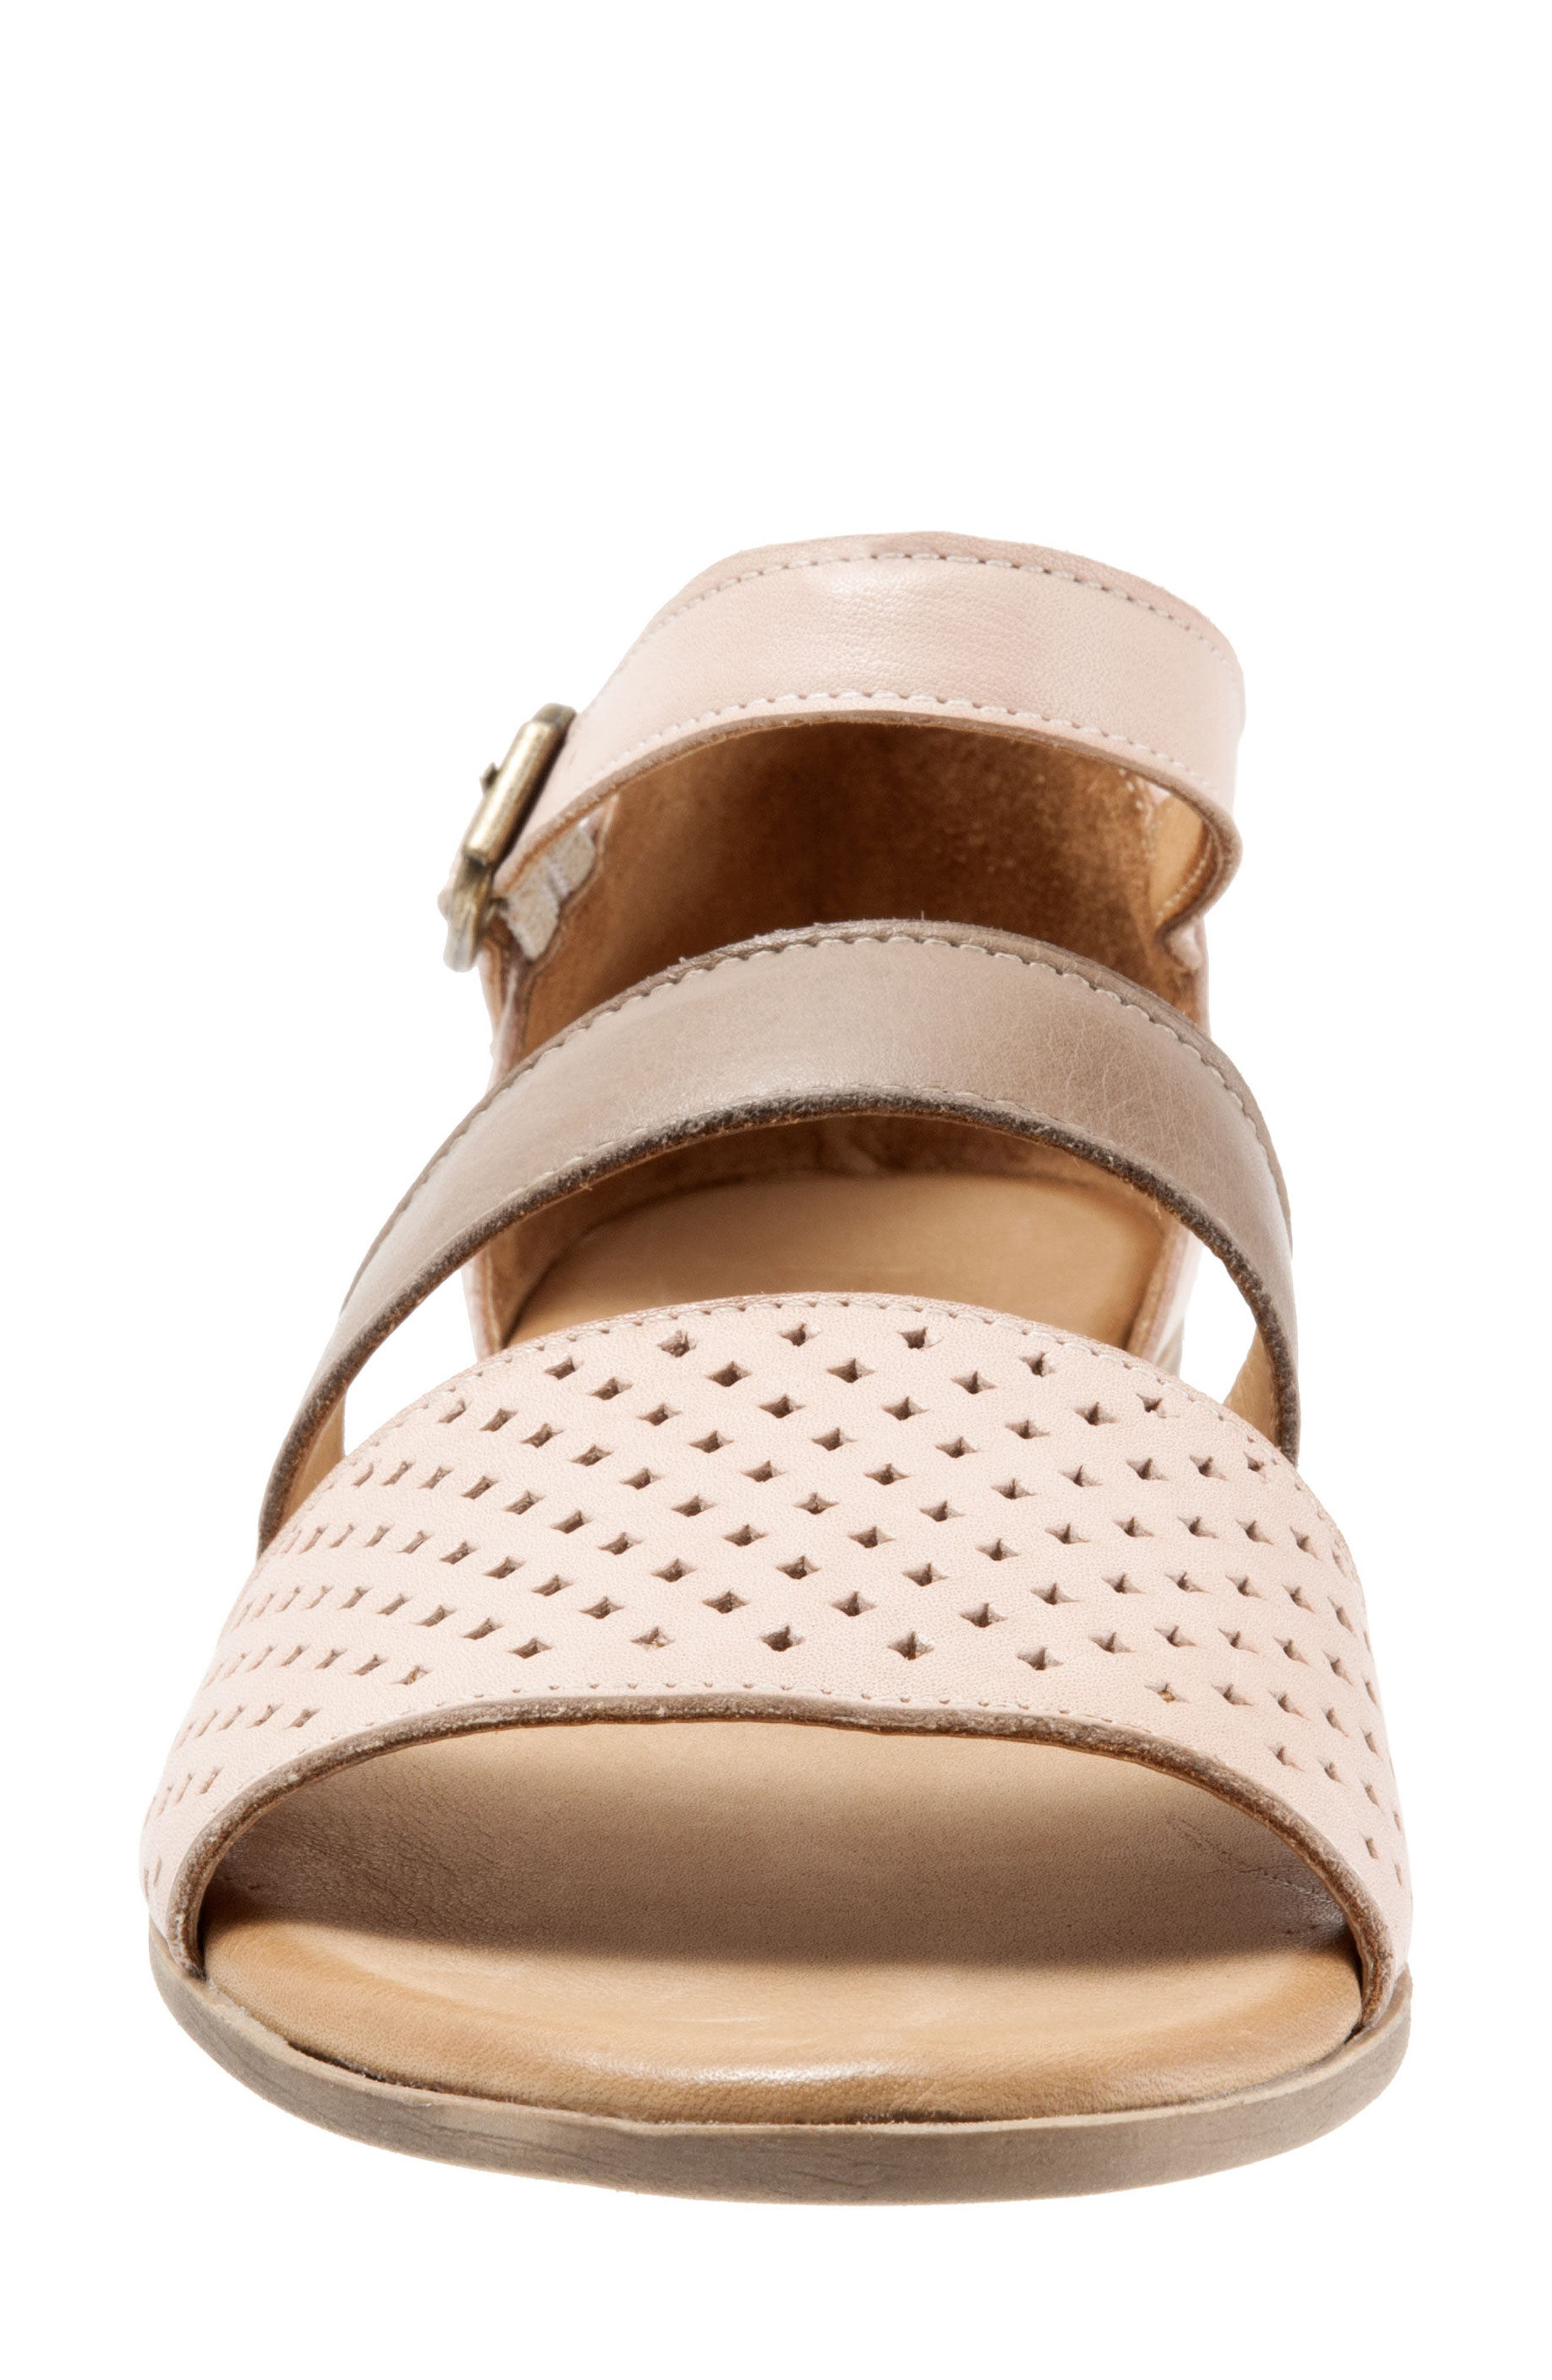 Janet Perforated Flat Sandal,                             Alternate thumbnail 4, color,                             Pale Pink Leather